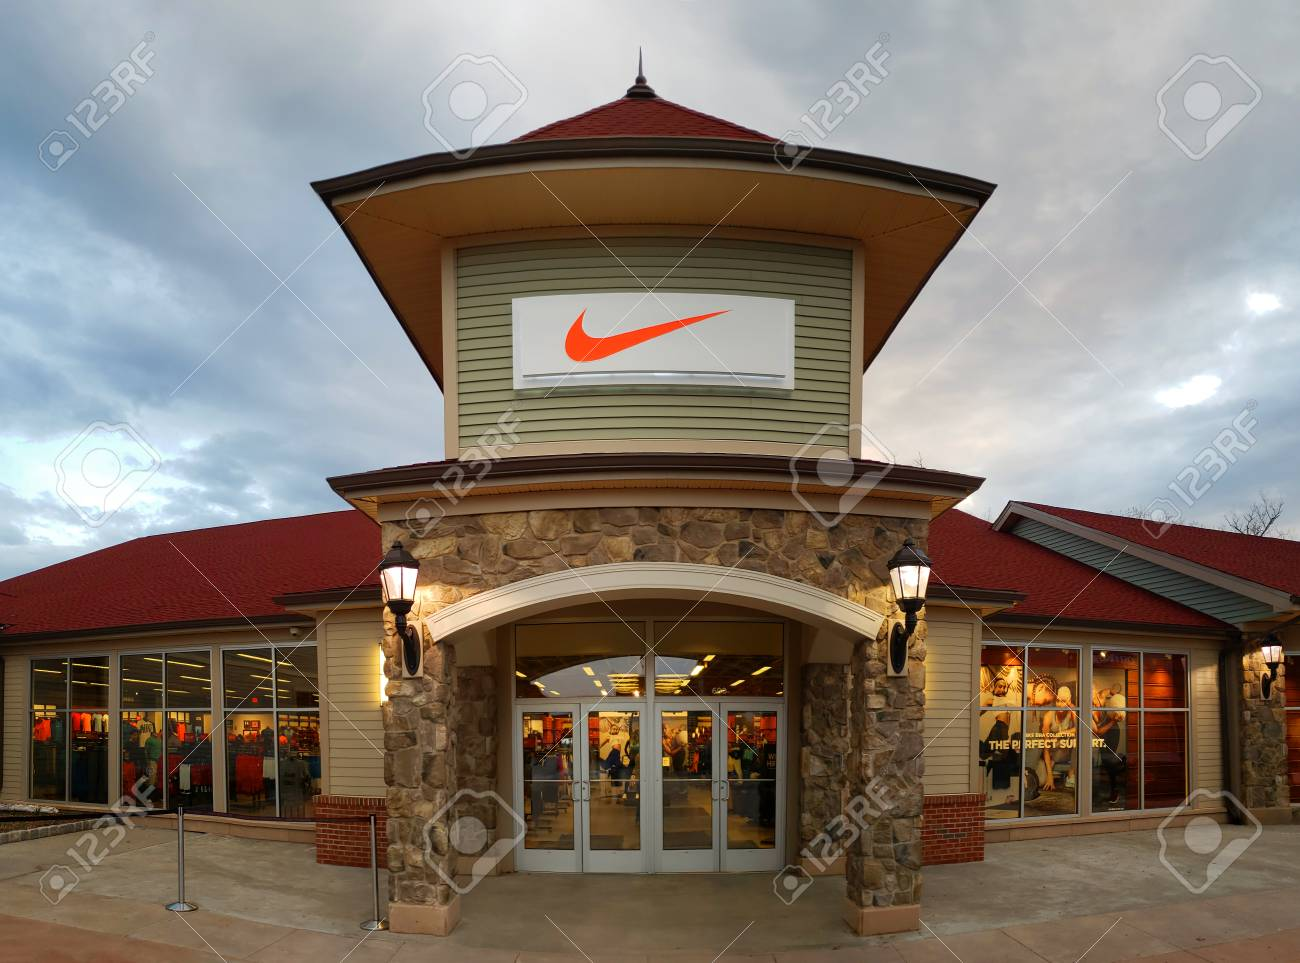 57e8b31f3 CENTRAL VALLEY, NY - MAY 4, 2018: Nike store in Woodbury Common Premium  Outlet Mall. Nike is worlds largest supplier of athletic shoes and apparel  and a ...